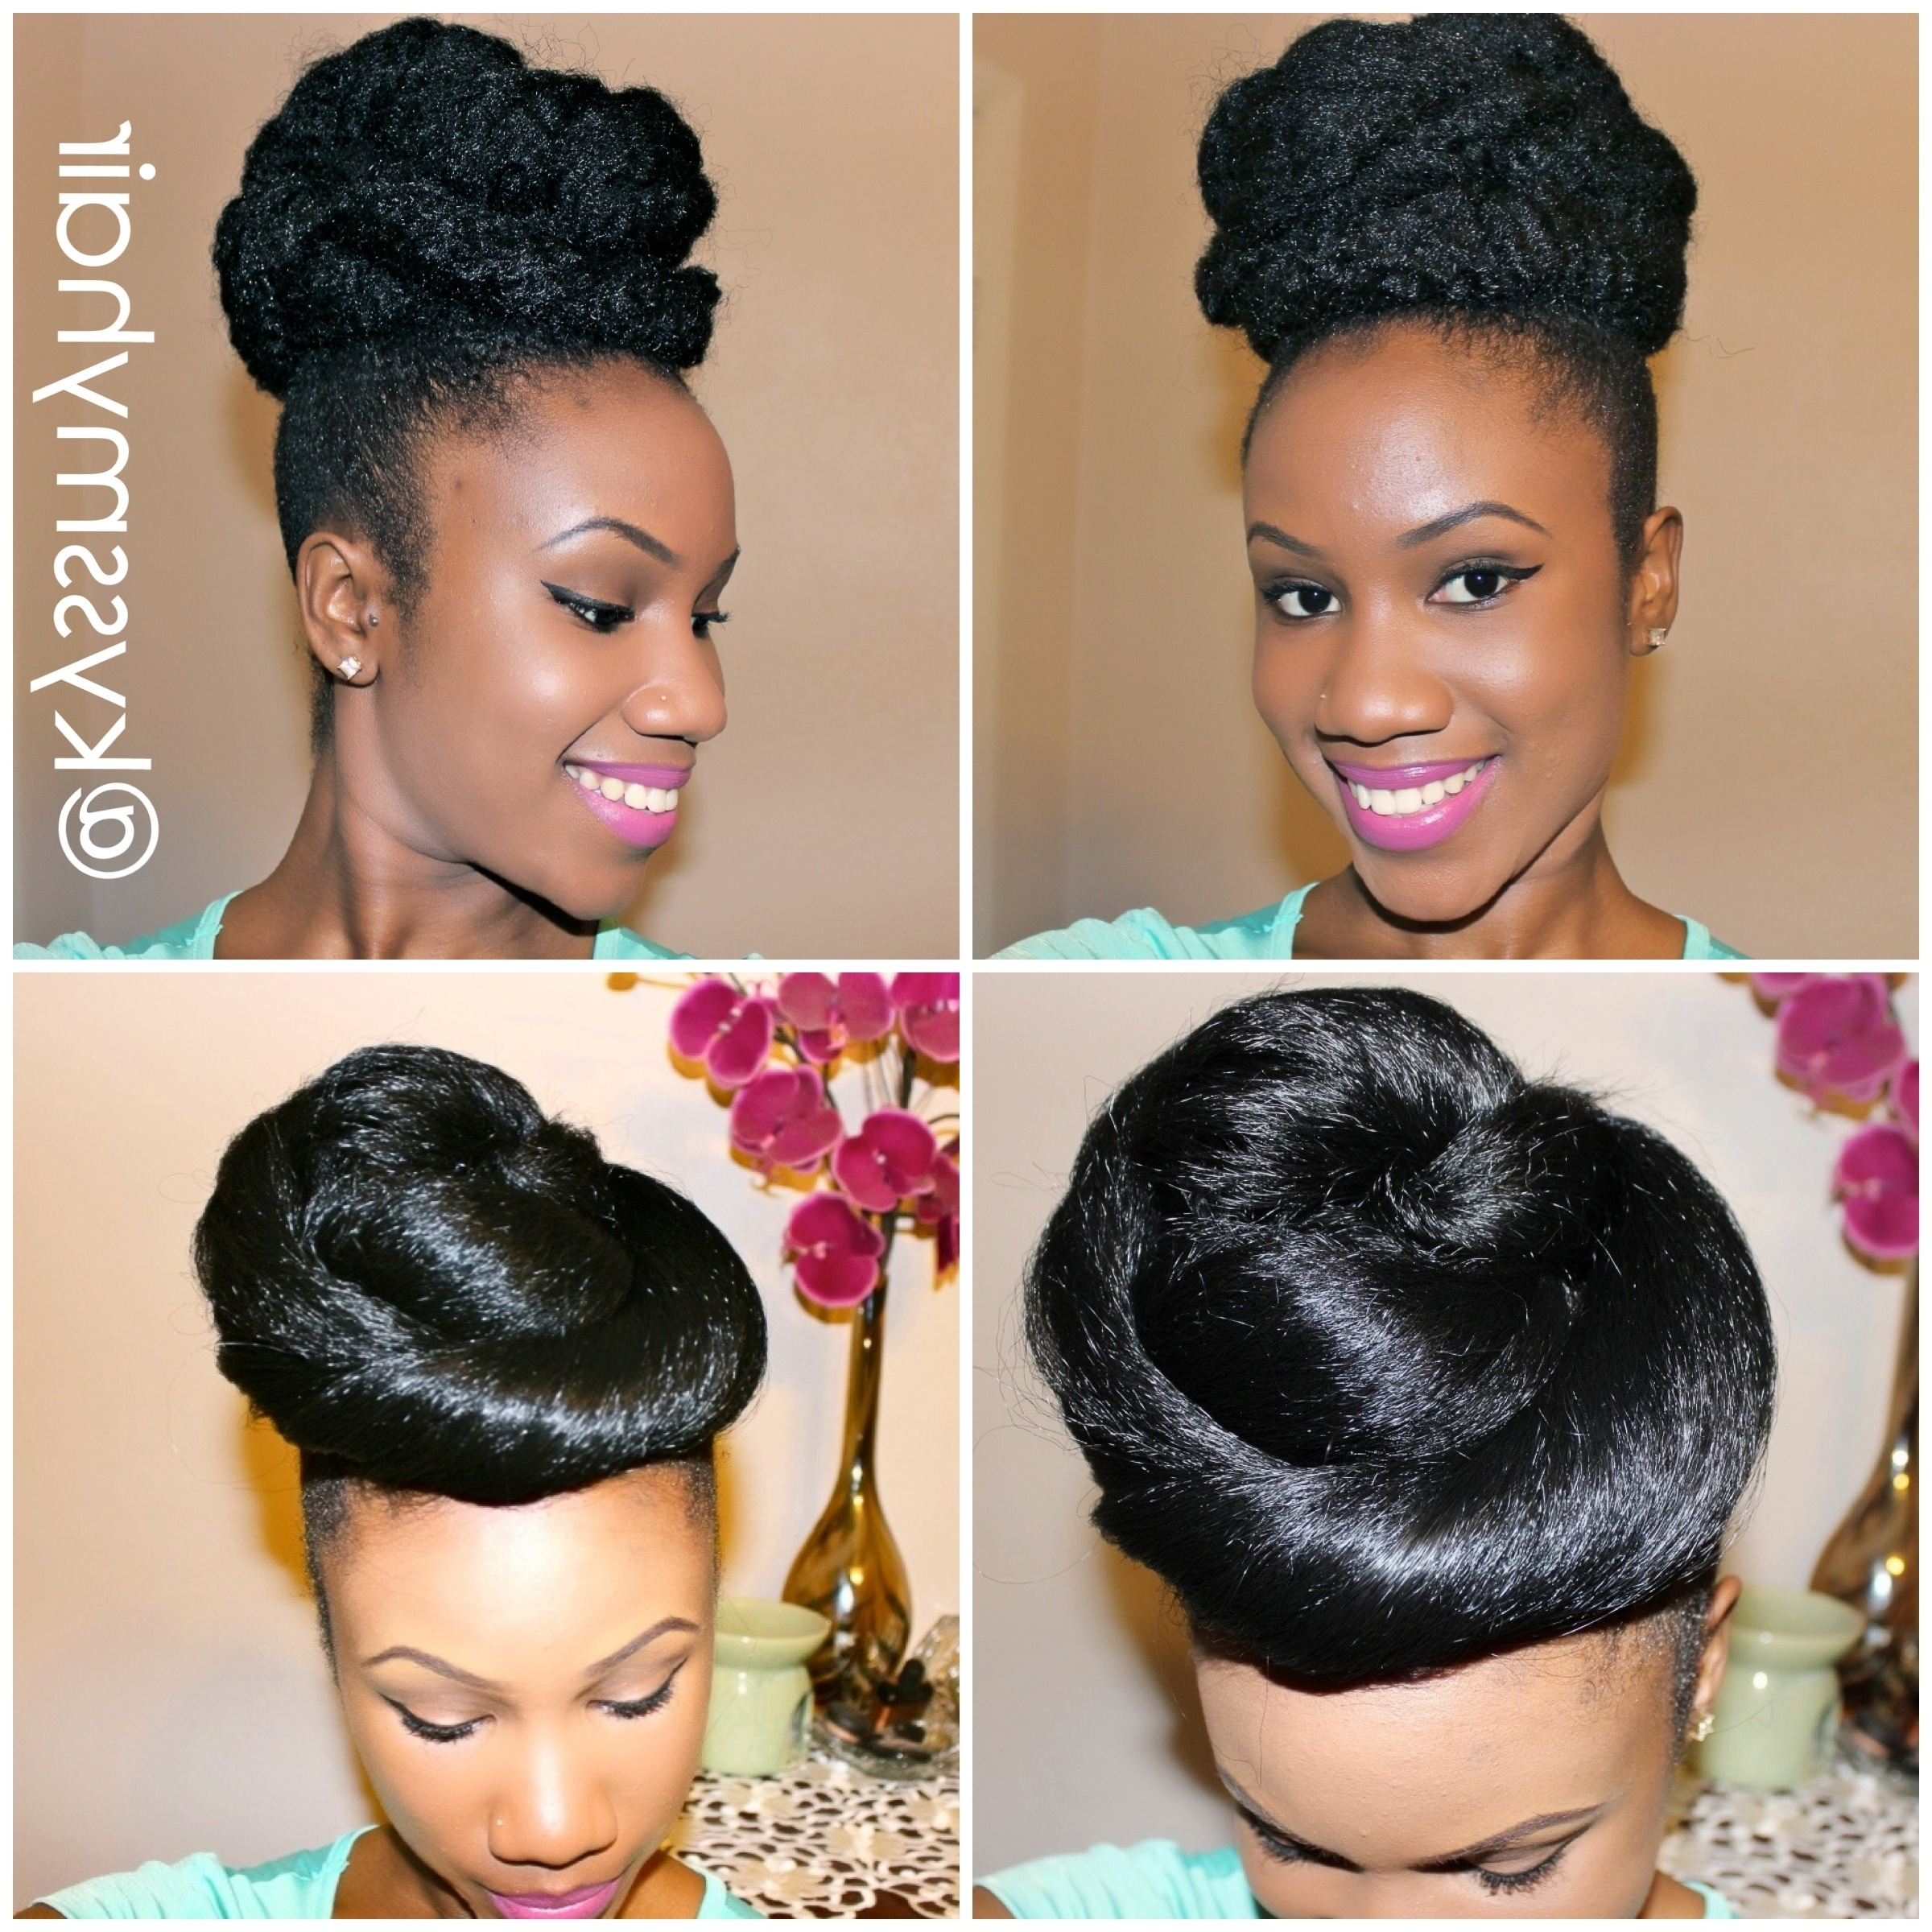 Hairstyles With Braiding Hair Saturn Bun With Kanekalon Hair Kyss My Within Updo Hairstyles With Braiding Hair (View 5 of 15)